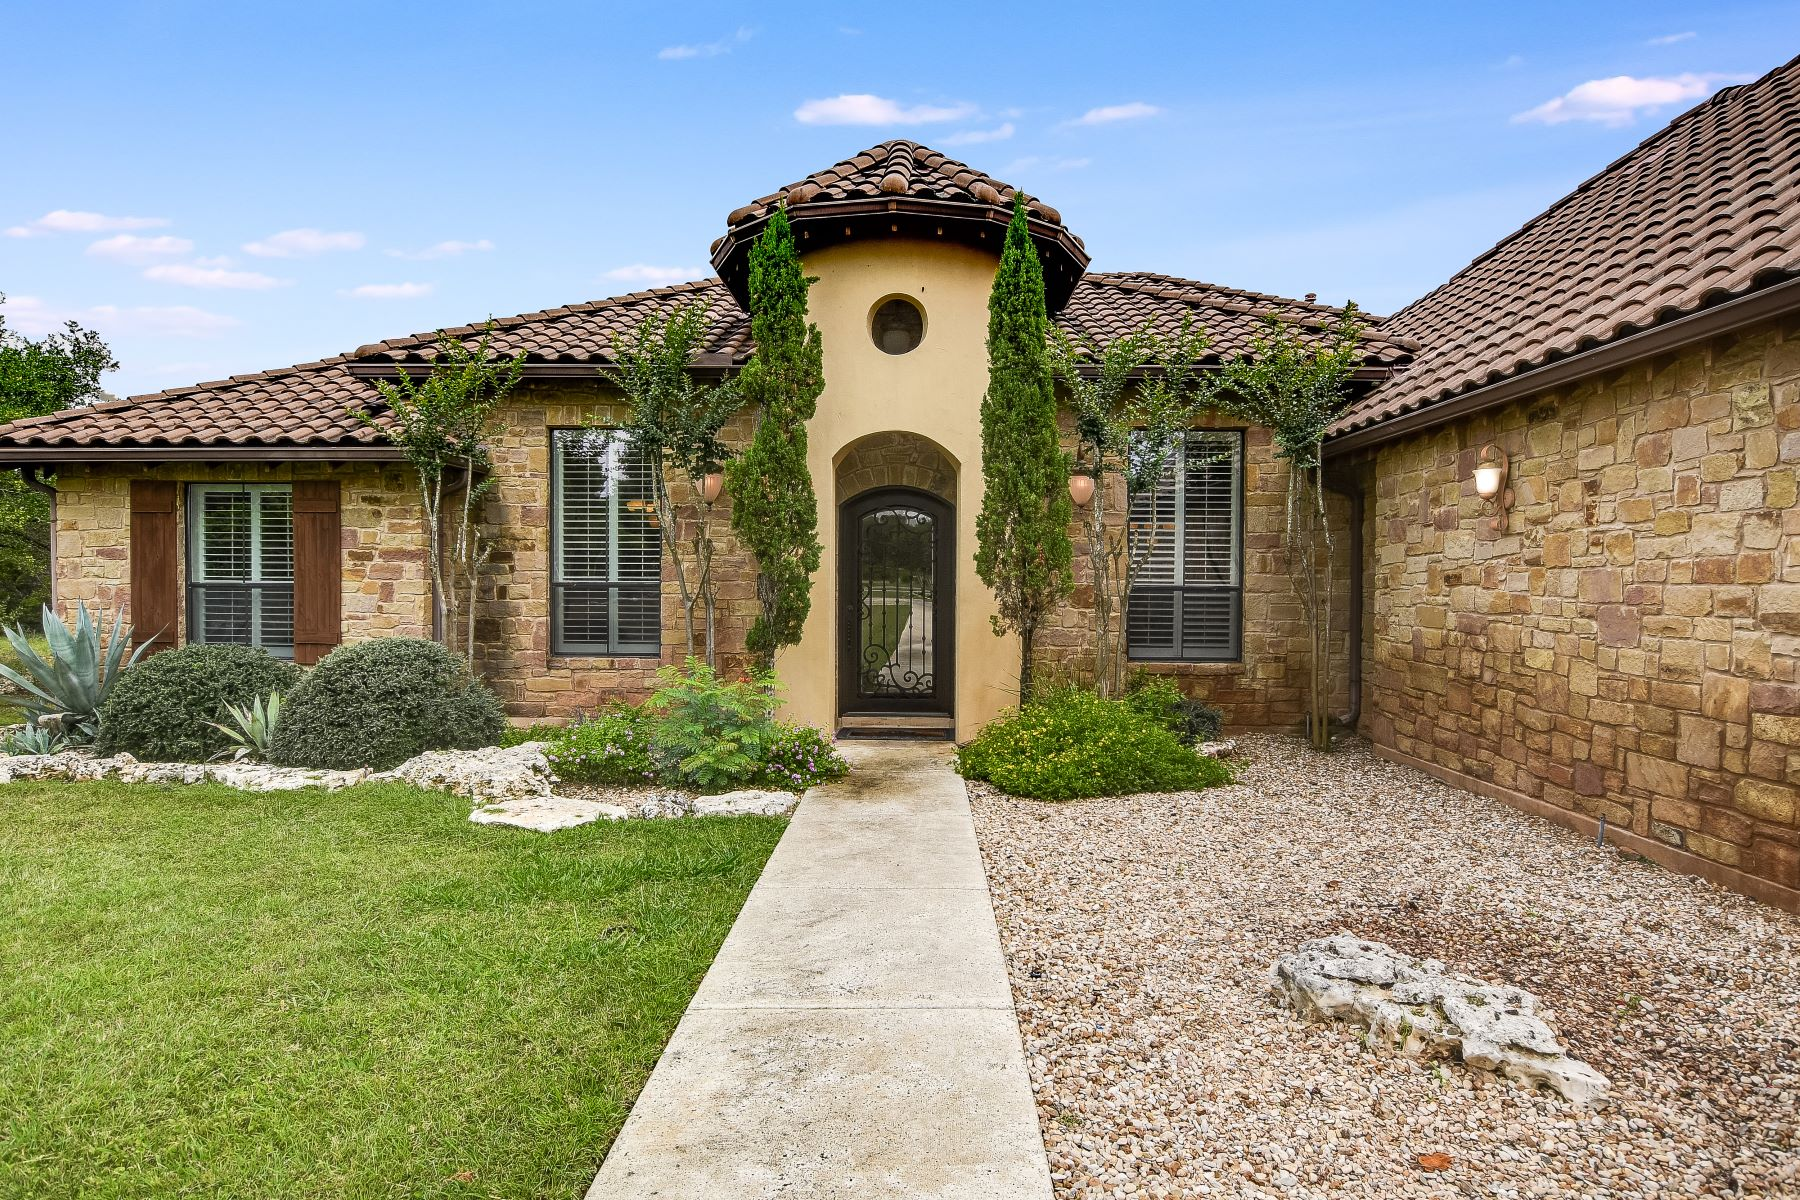 Single Family Homes for Sale at Texas Hill Country Villa with Barrel Tile Roof 284 Nicholas Lane Driftwood, Texas 78619 United States